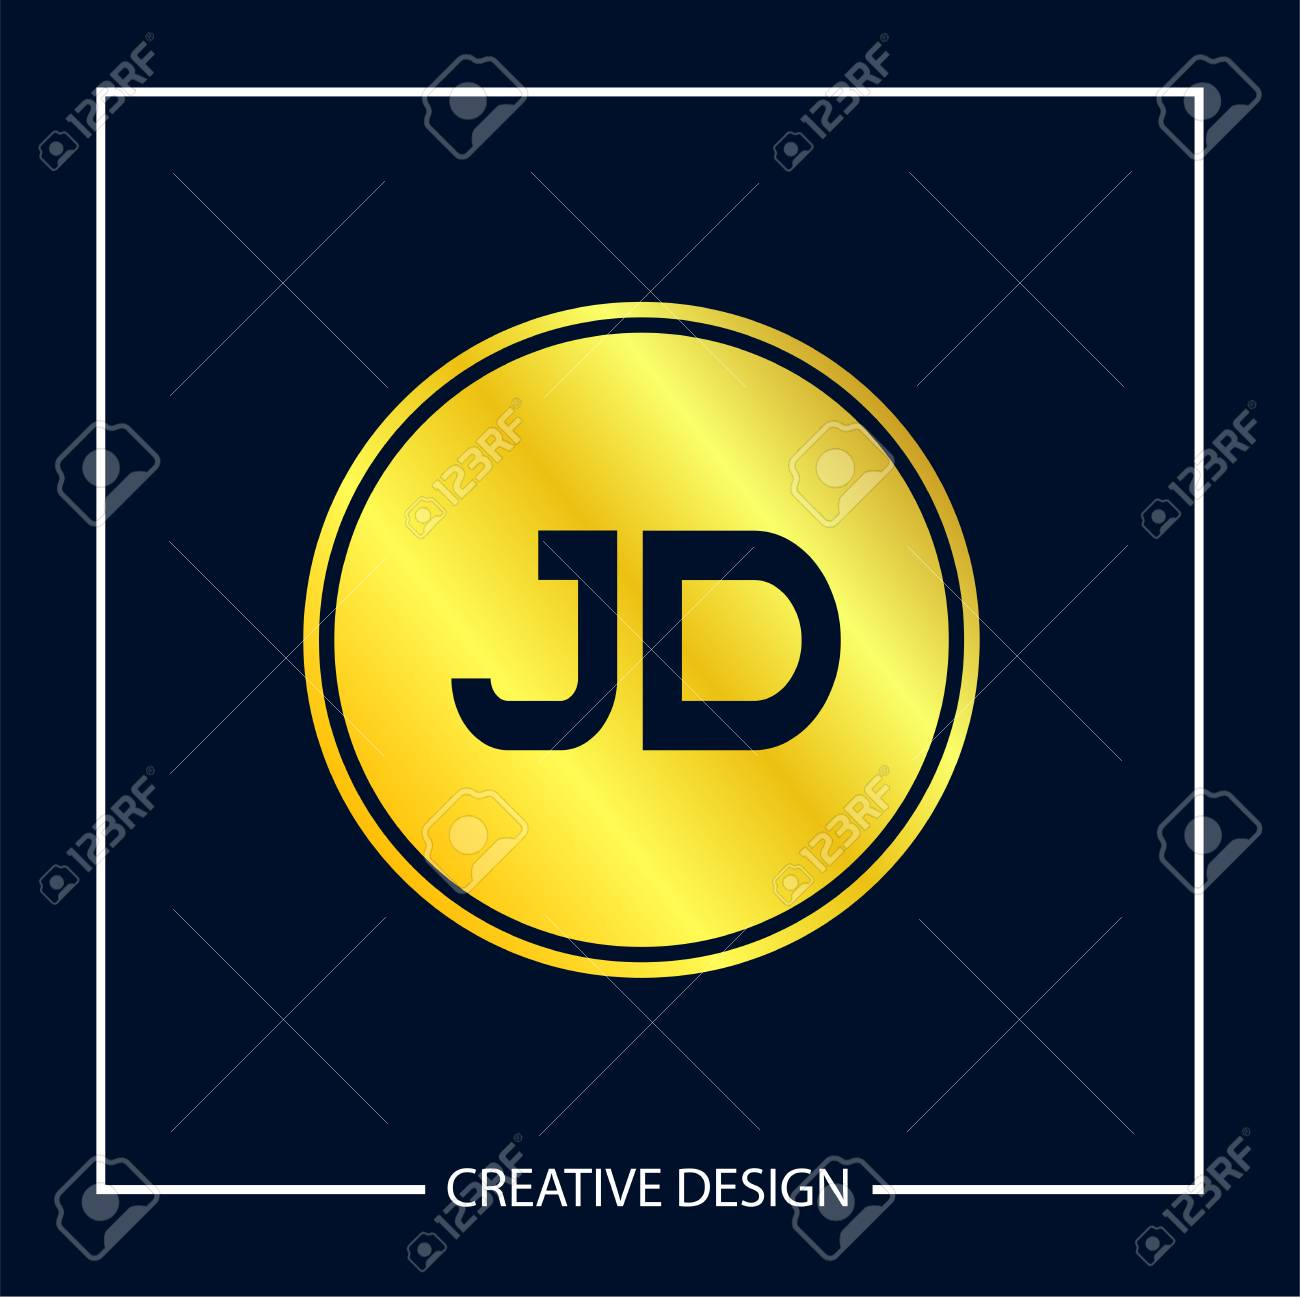 initial letter jd logo template design royalty free cliparts vectors and stock illustration image 112579776 initial letter jd logo template design